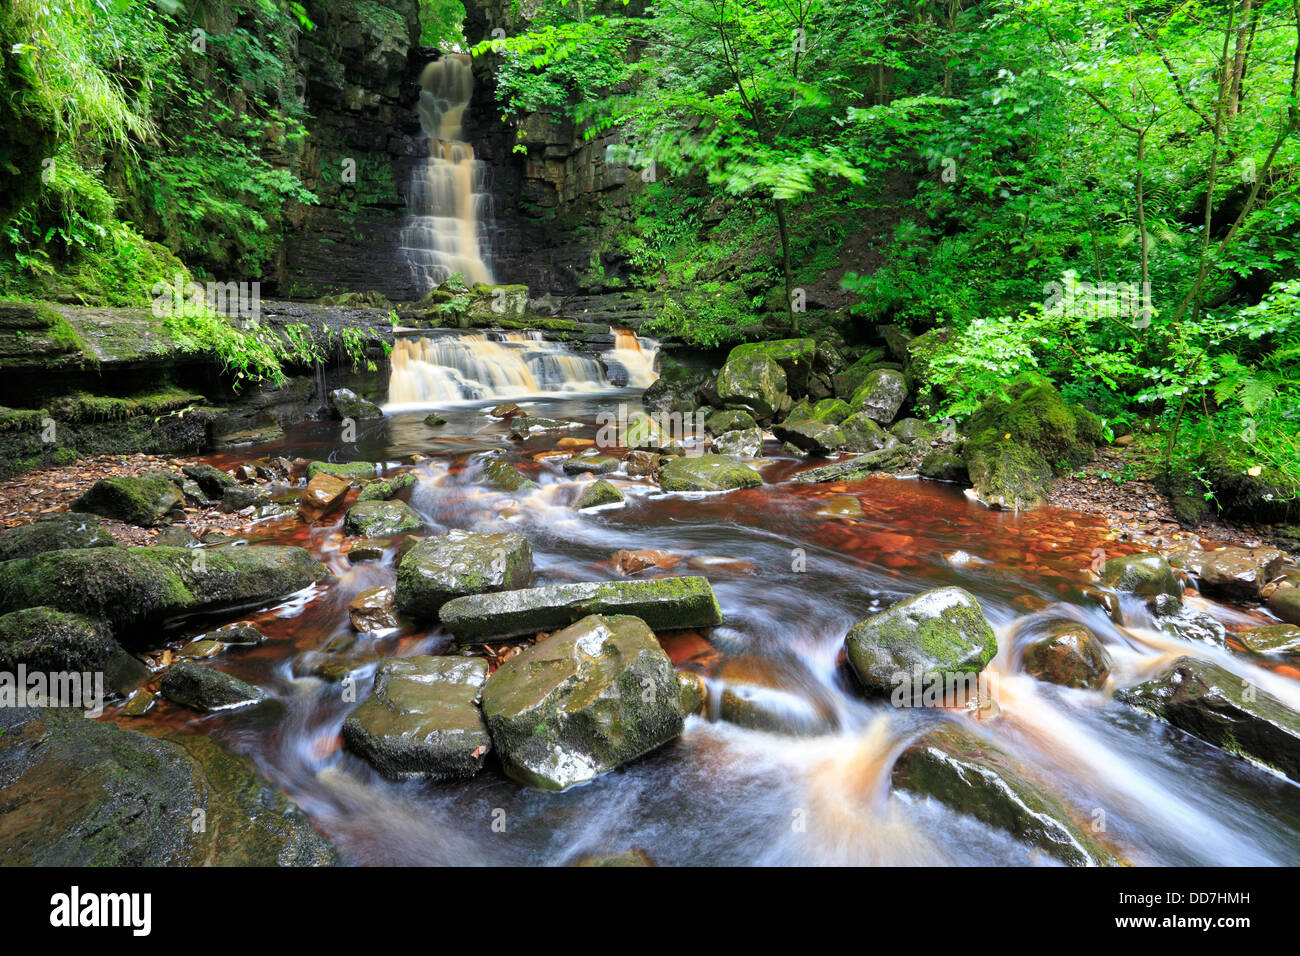 Mill Gill Force near Askrigg in Wensleydale, North Yorkshire, Yorkshire Dales National Park, England, UK. Stock Photo